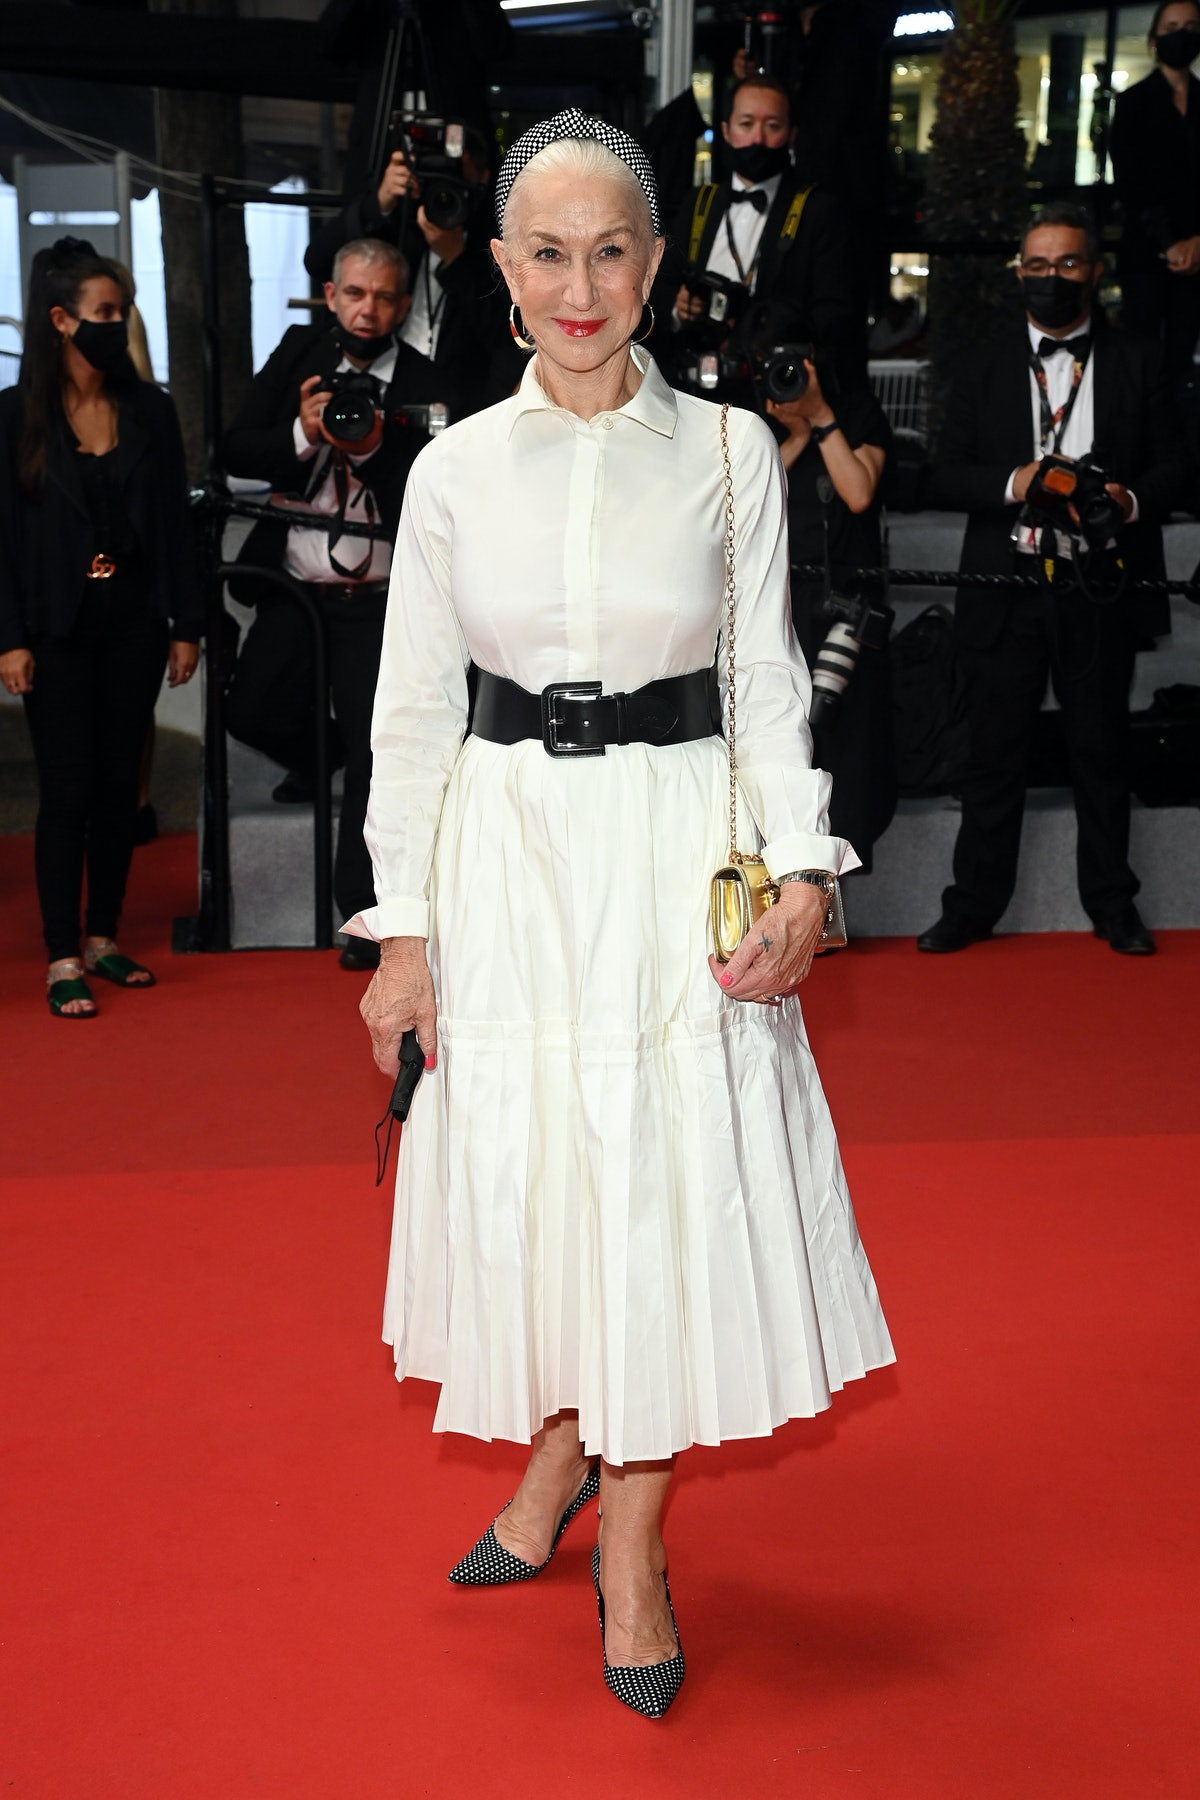 """CANNES, FRANCE - JULY 07: Dame Helen Mirren attends the """"The Velvet Underground"""" screening during the 74th annual Cannes Film Festival on July 07, 2021 in Cannes, France. (Photo by Daniele Venturelli/WireImage)"""